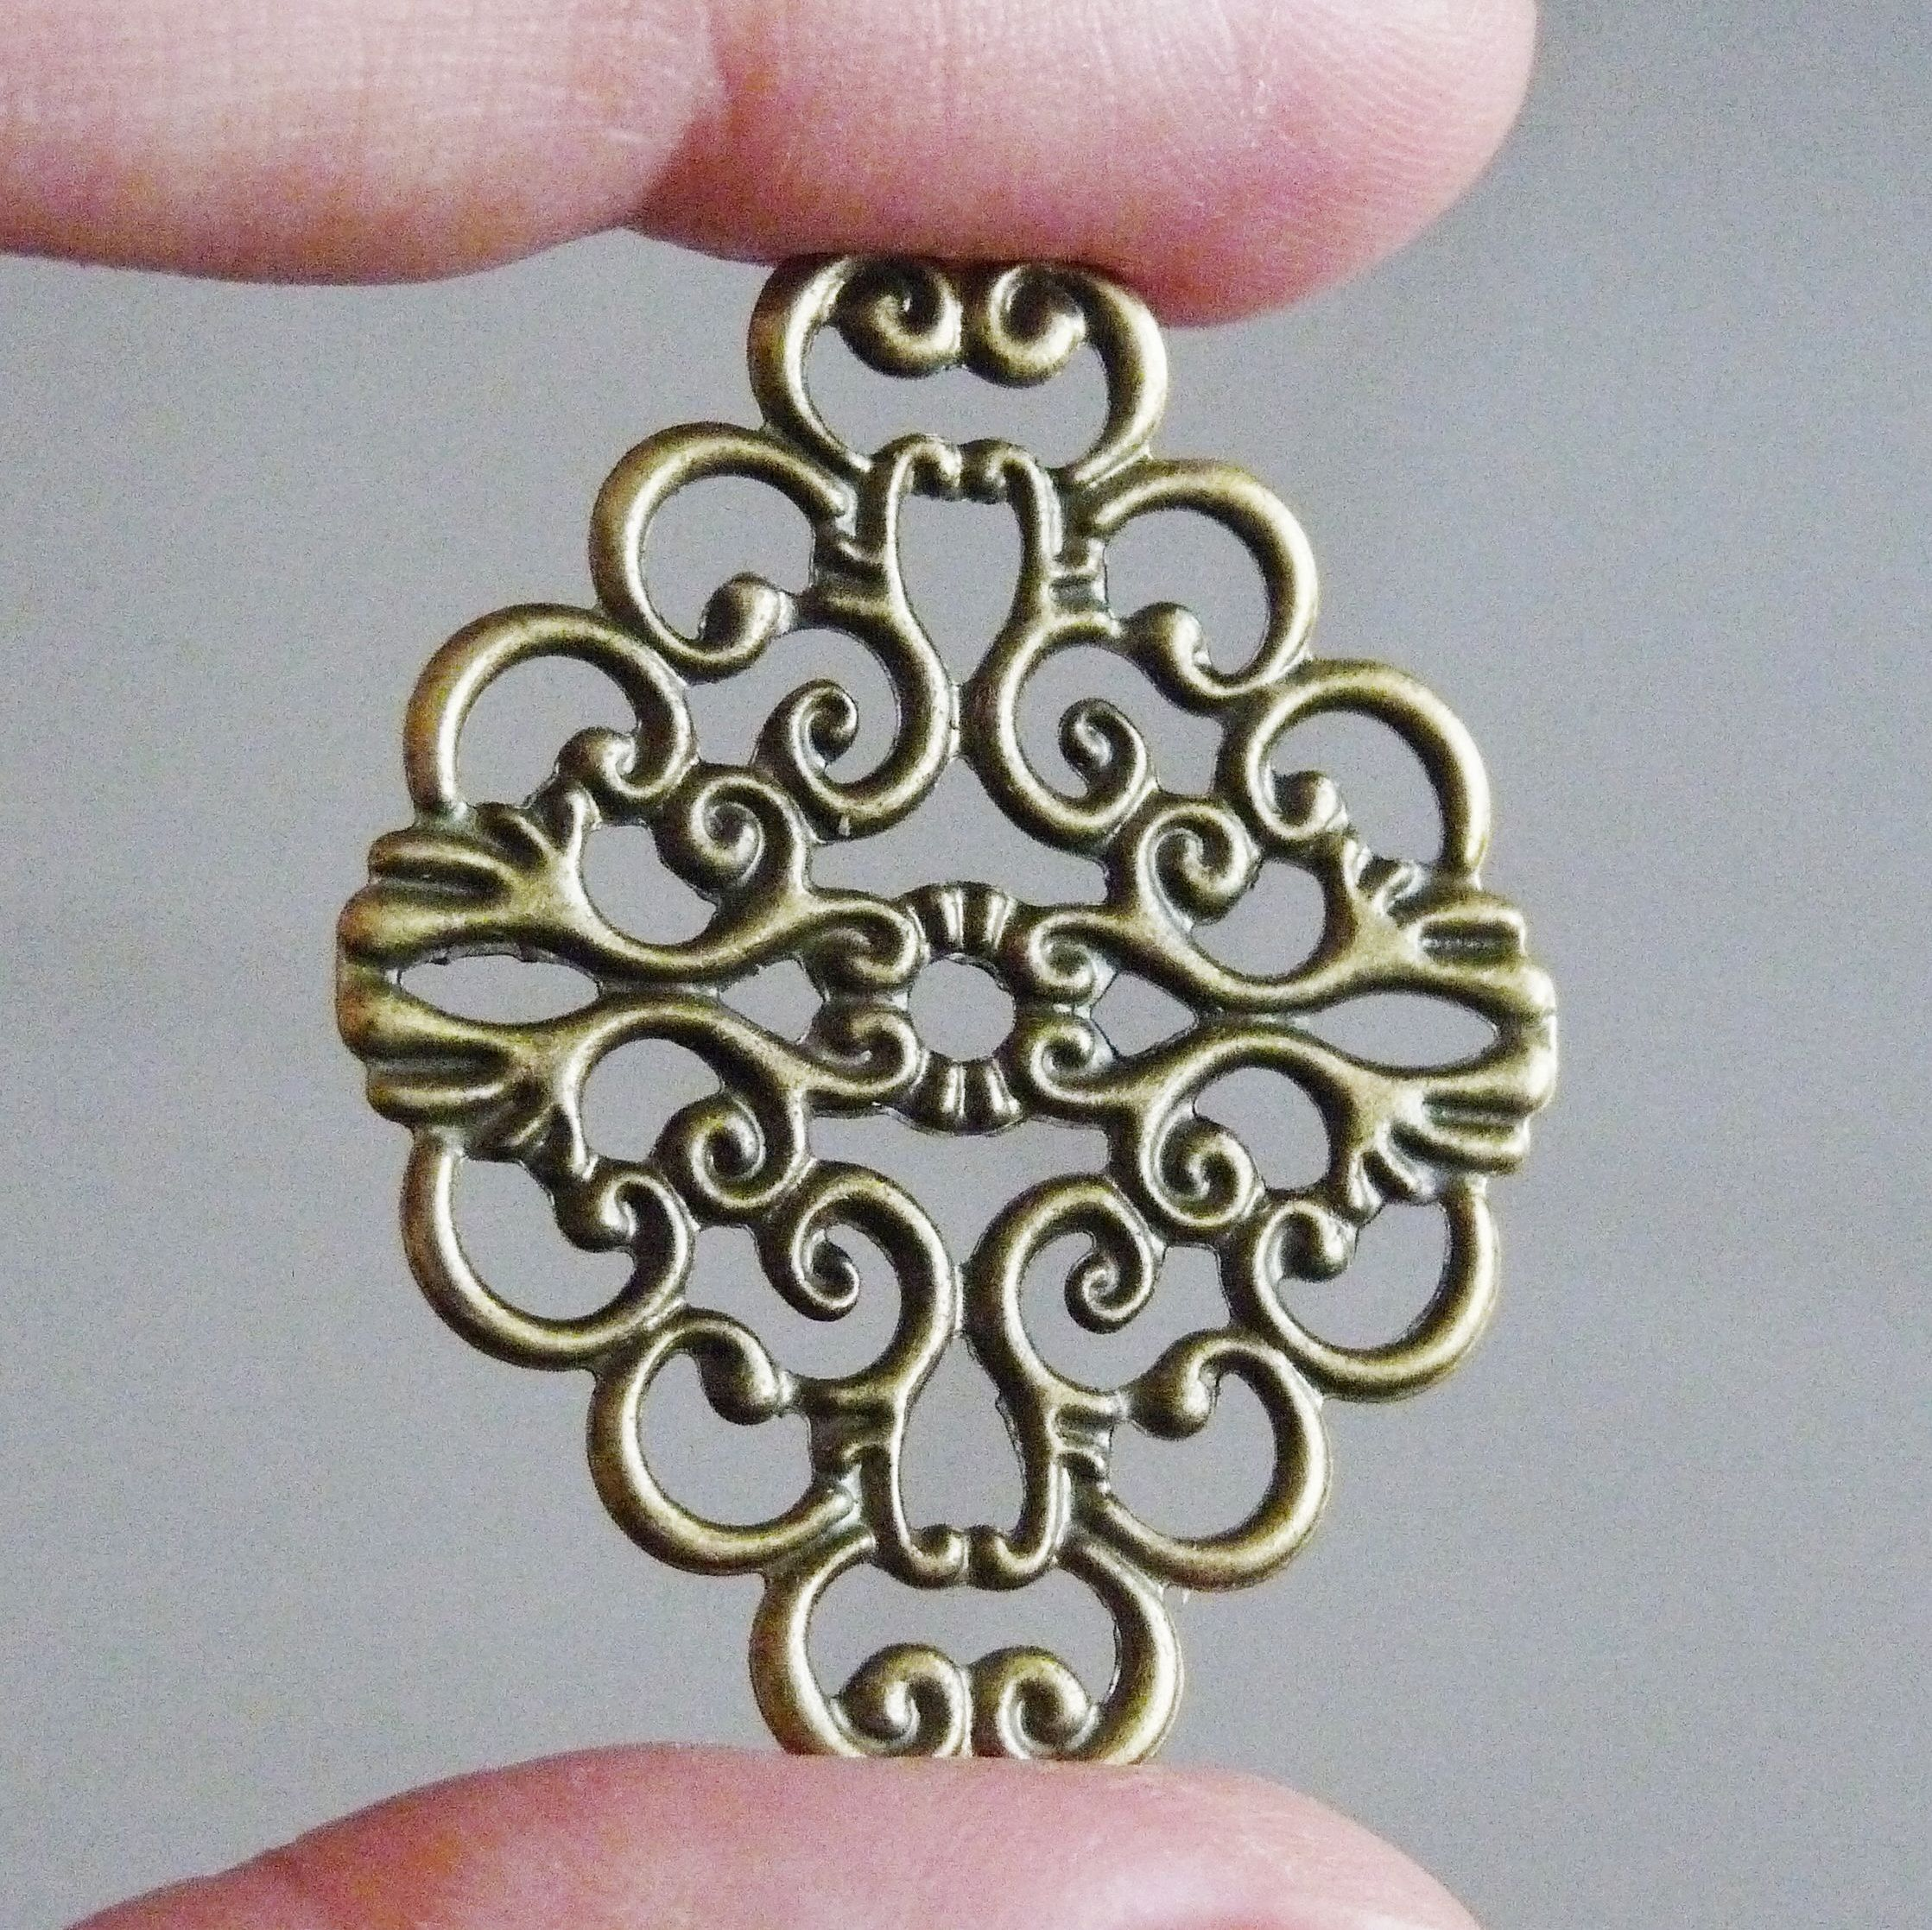 36 mm Antique Brass Round Hollow Filigree Charms Pendant DIY Jewelry 10 Pcs